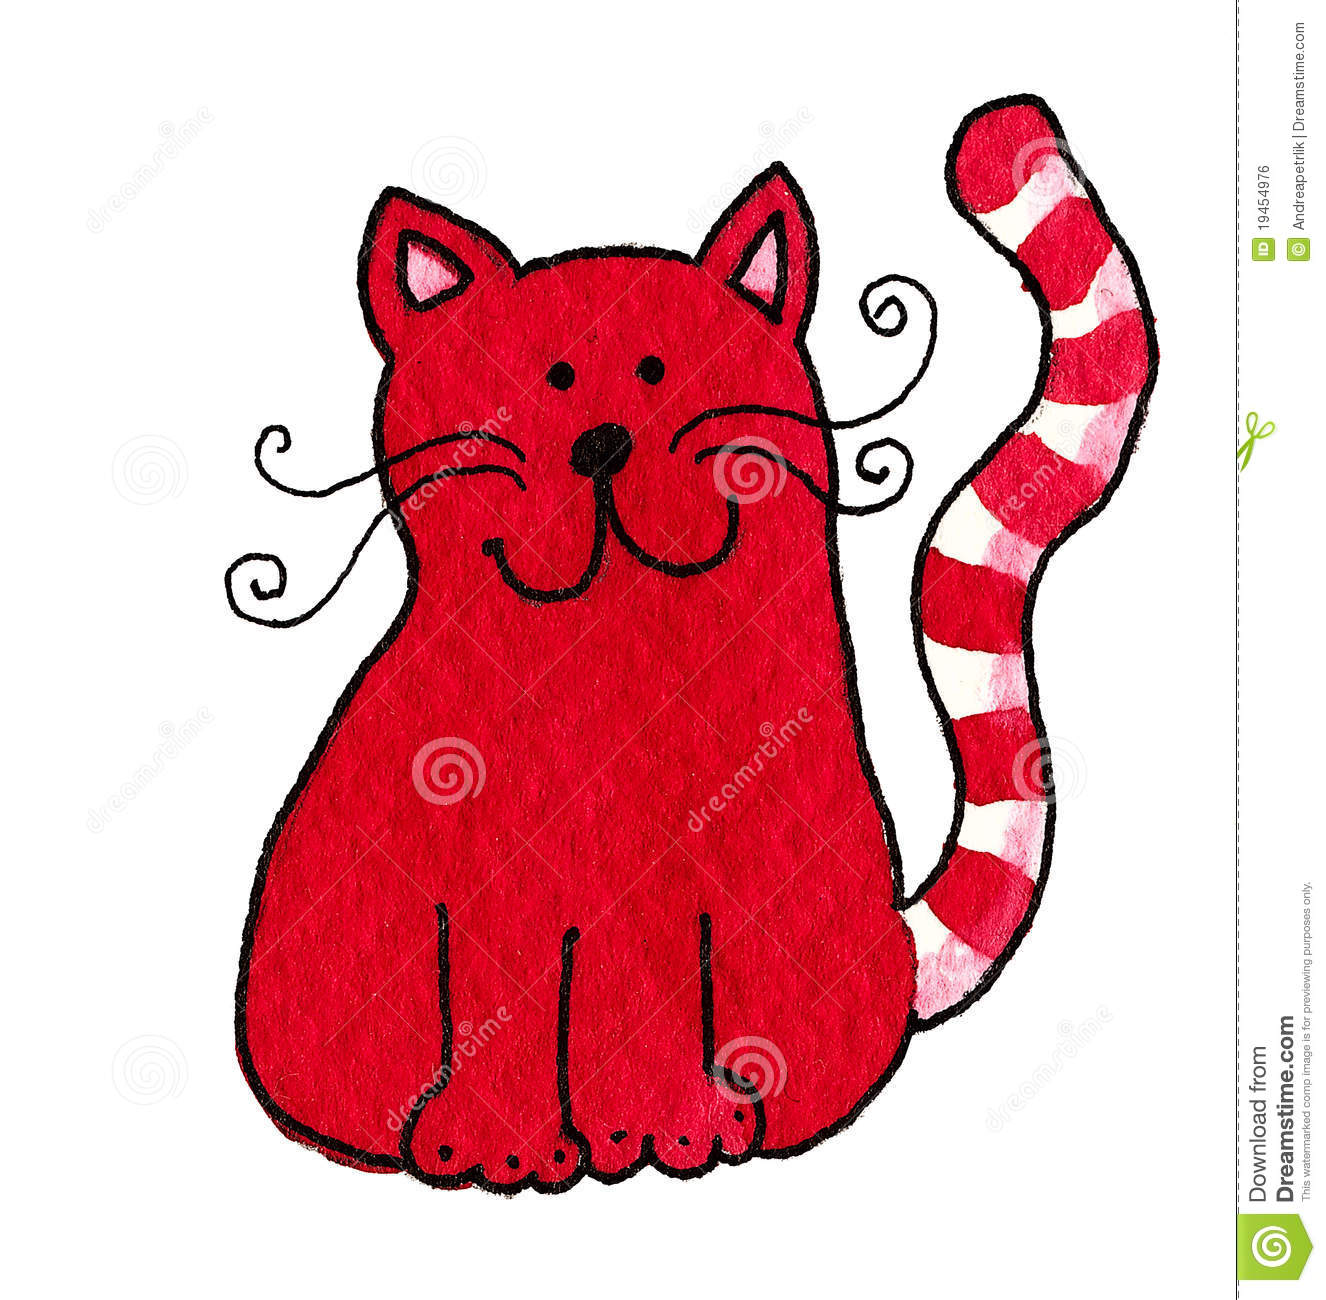 Cute Cat Girl Wallpaper Cute Red Cat Royalty Free Stock Image Image 19454976